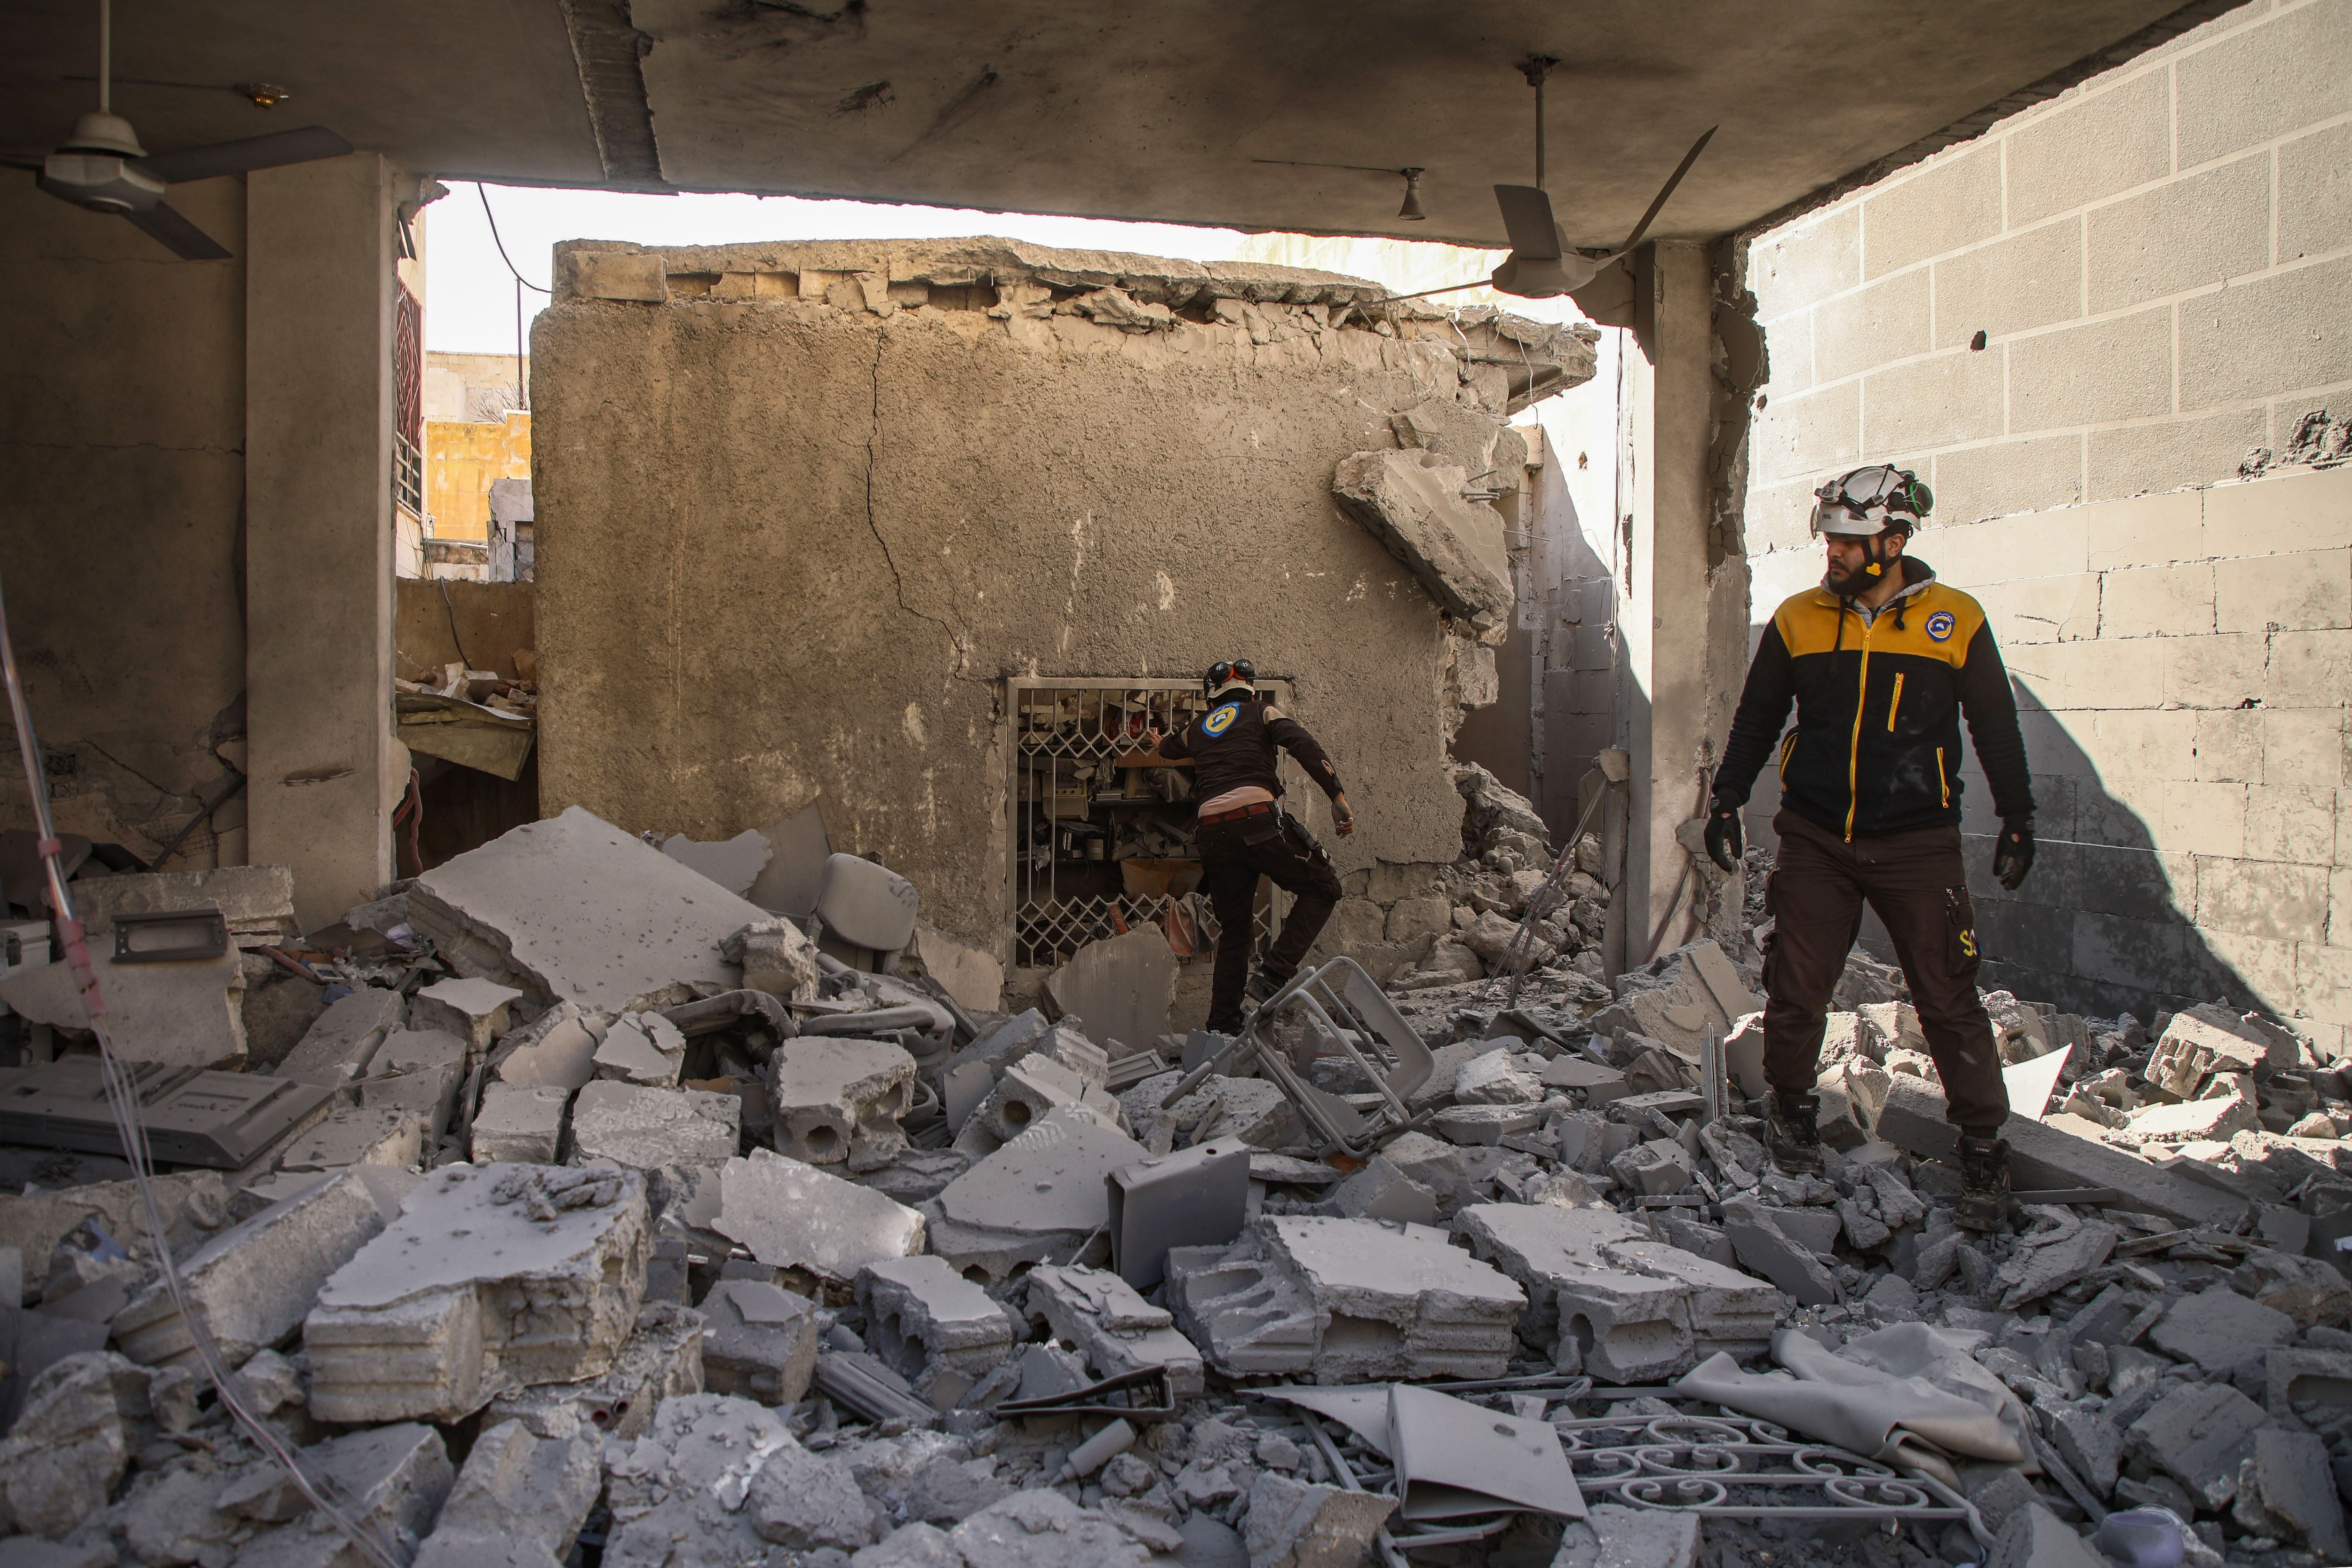 Members of the Syrian Civil Defence inspect debris and rubble as they search for survivors at a destroyed hospital in the town of Darret Ezza.